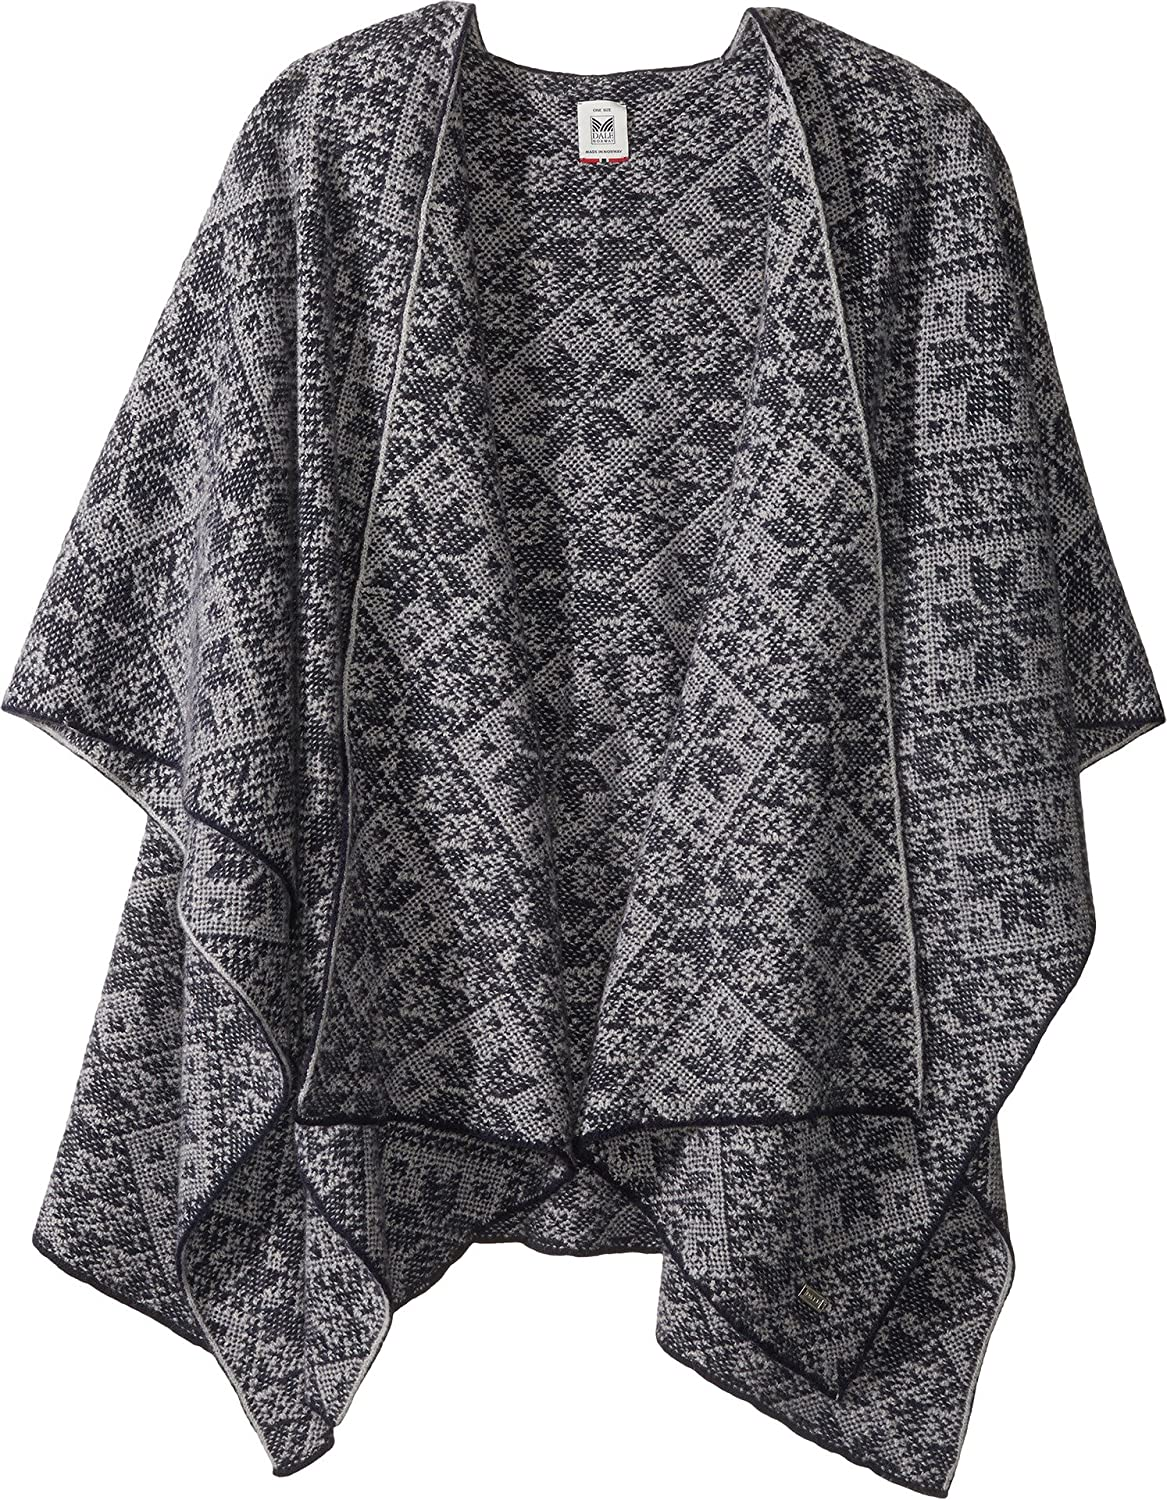 Dale of Norway Women's Rose Shawl Black One Size Dale of Norway AS 11651